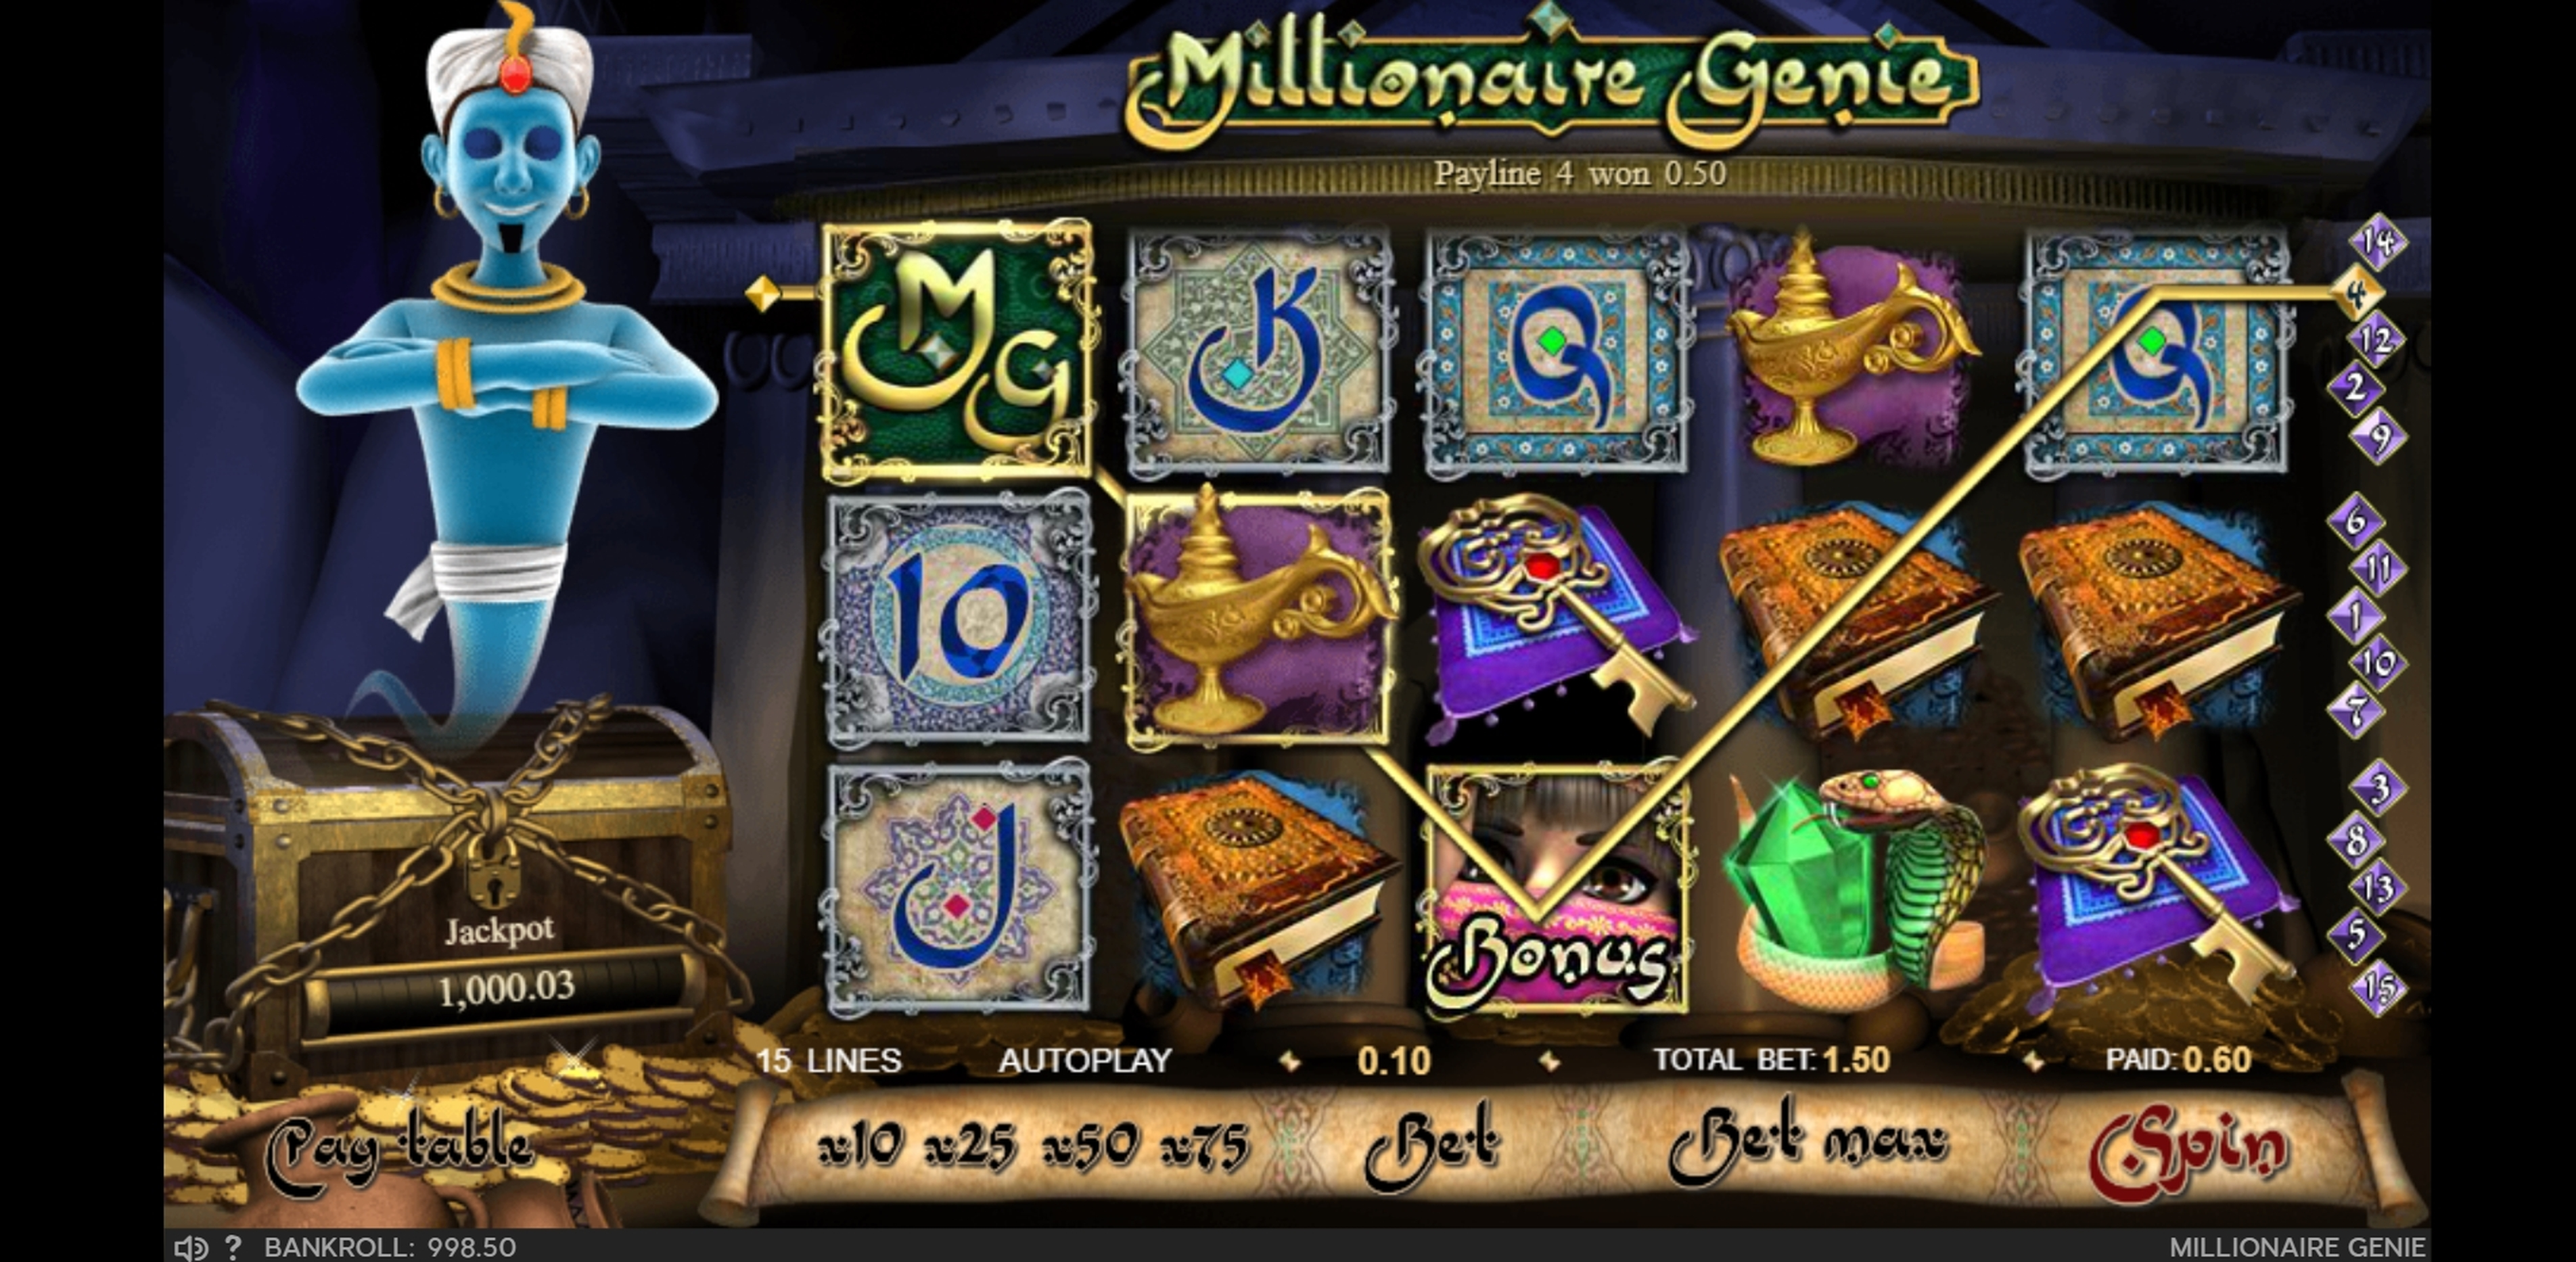 Win Money in Millionaire Genie Free Slot Game by GVG